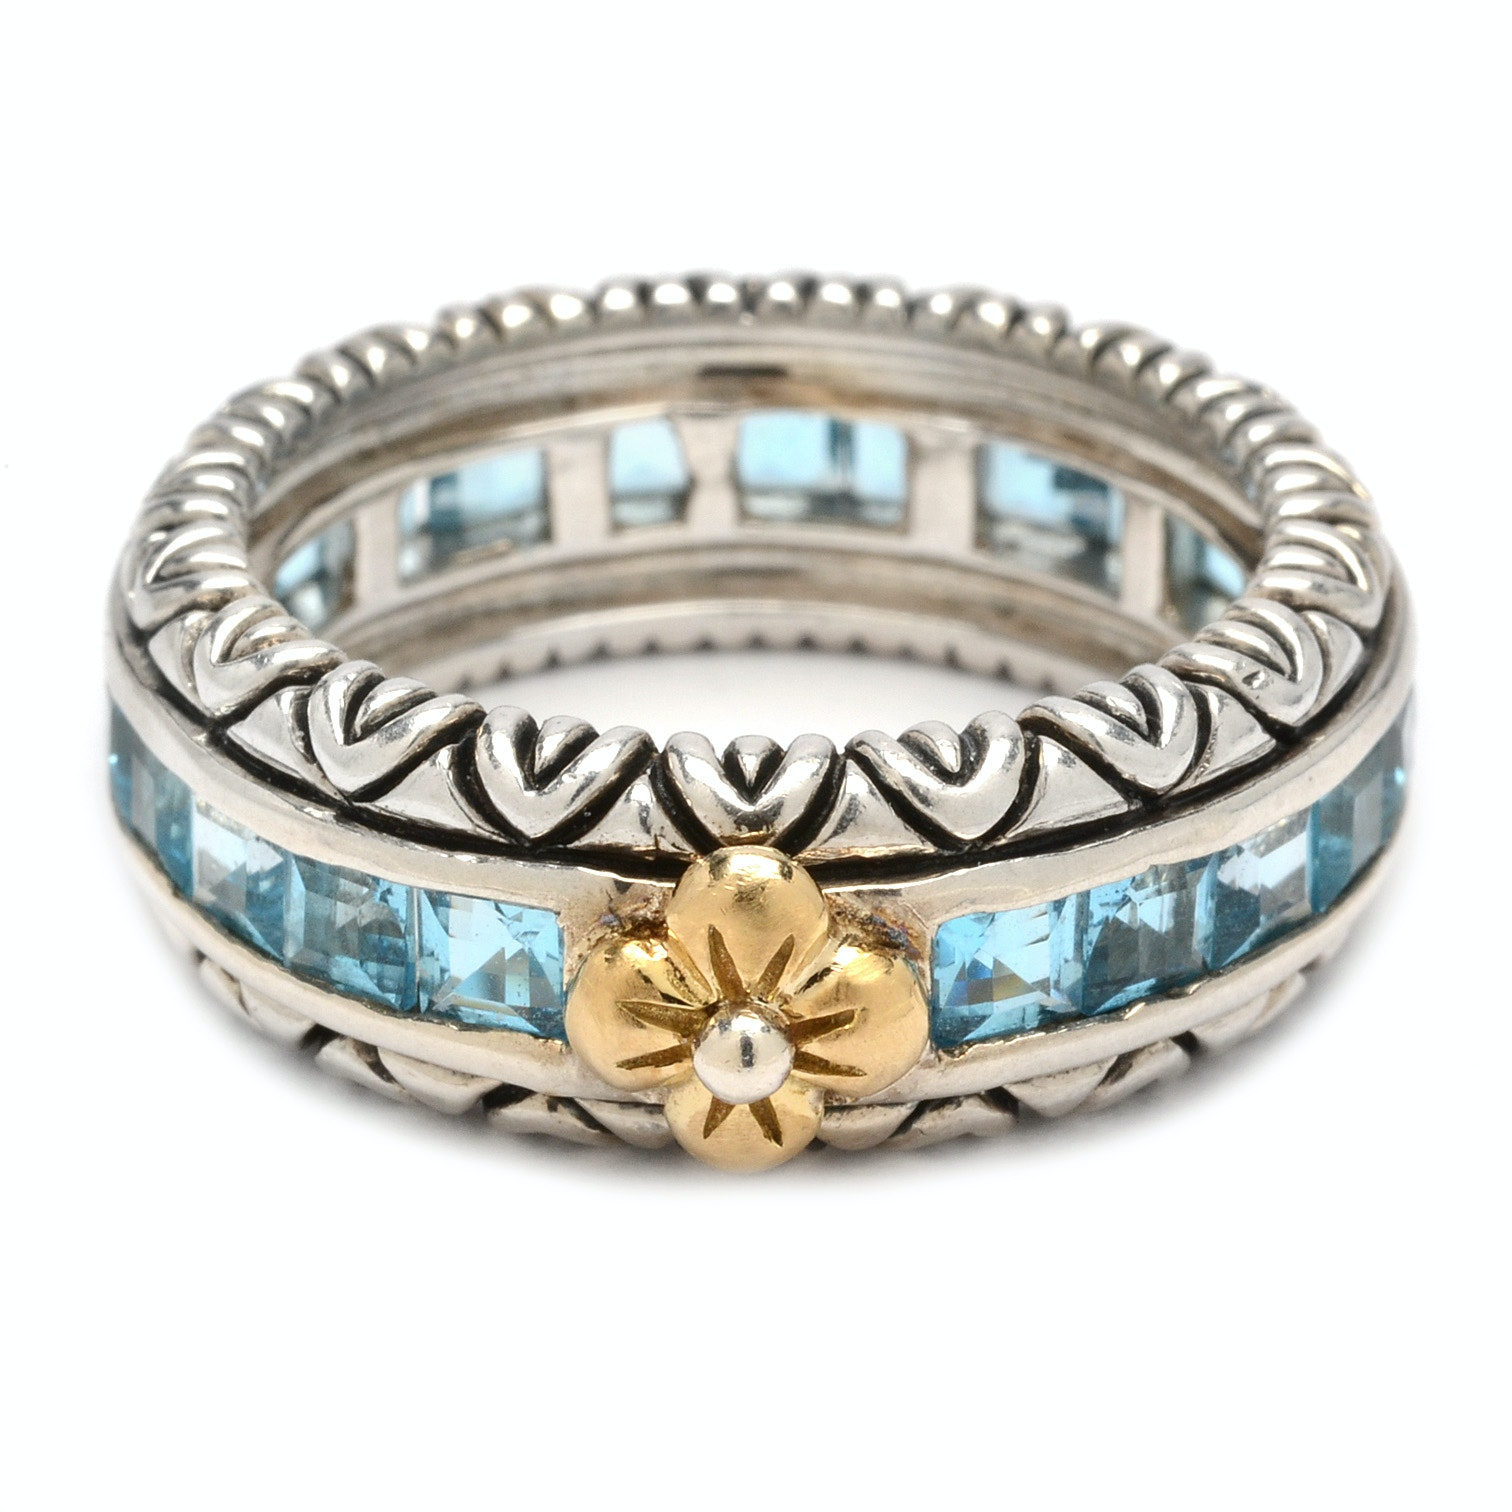 Barbara Bixby Sterling Silver and 18K Gold 3.45 Carat Blue Topaz Ring